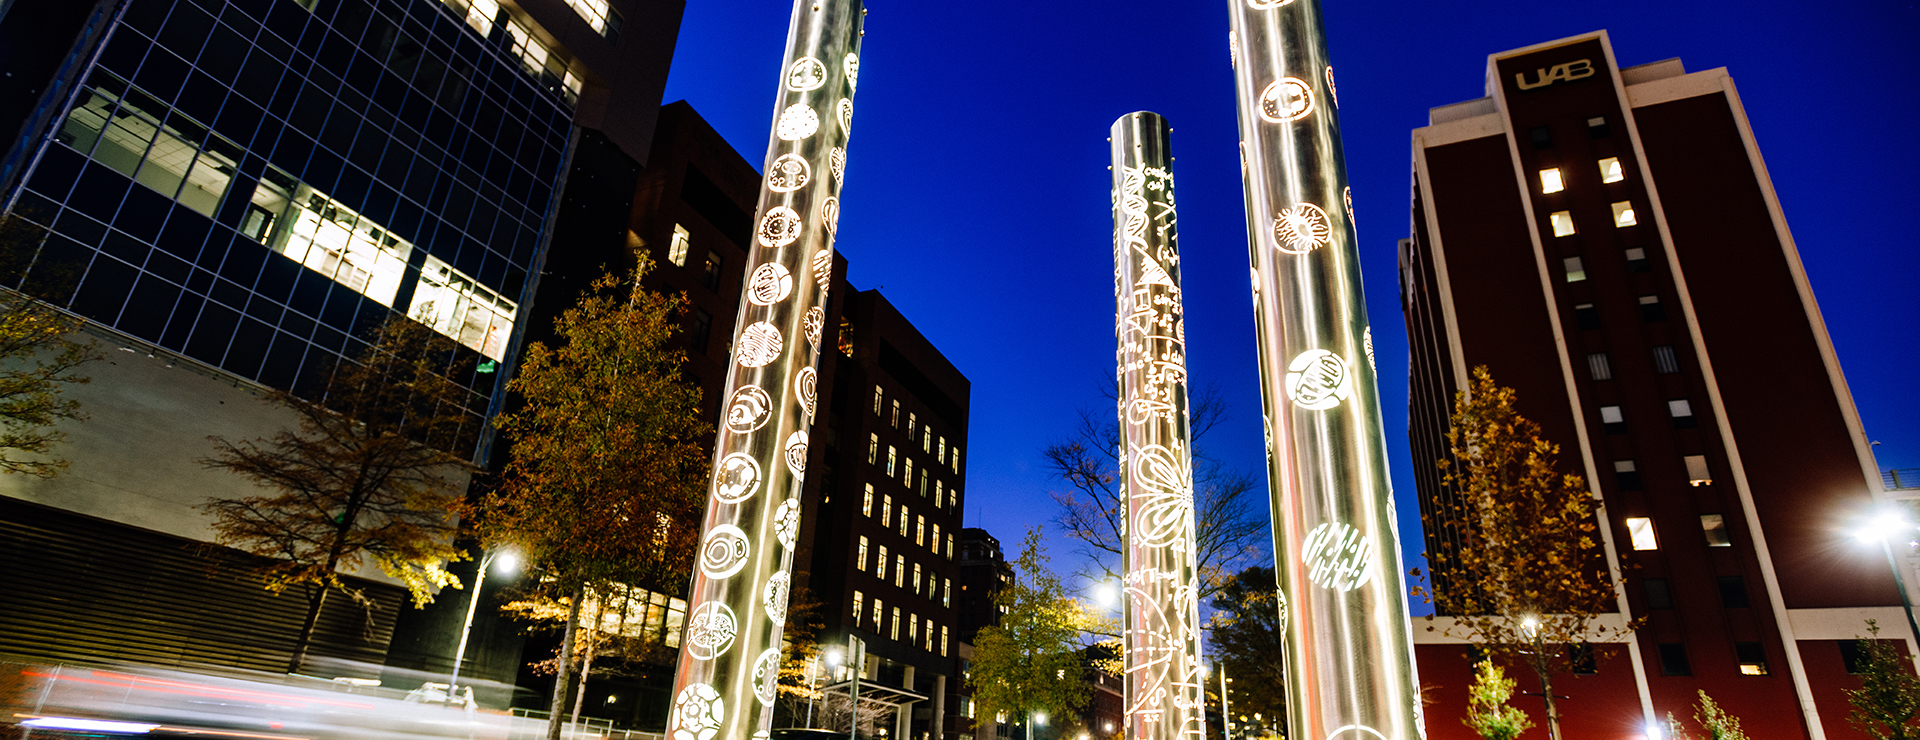 New art installation pays homage to math, science education